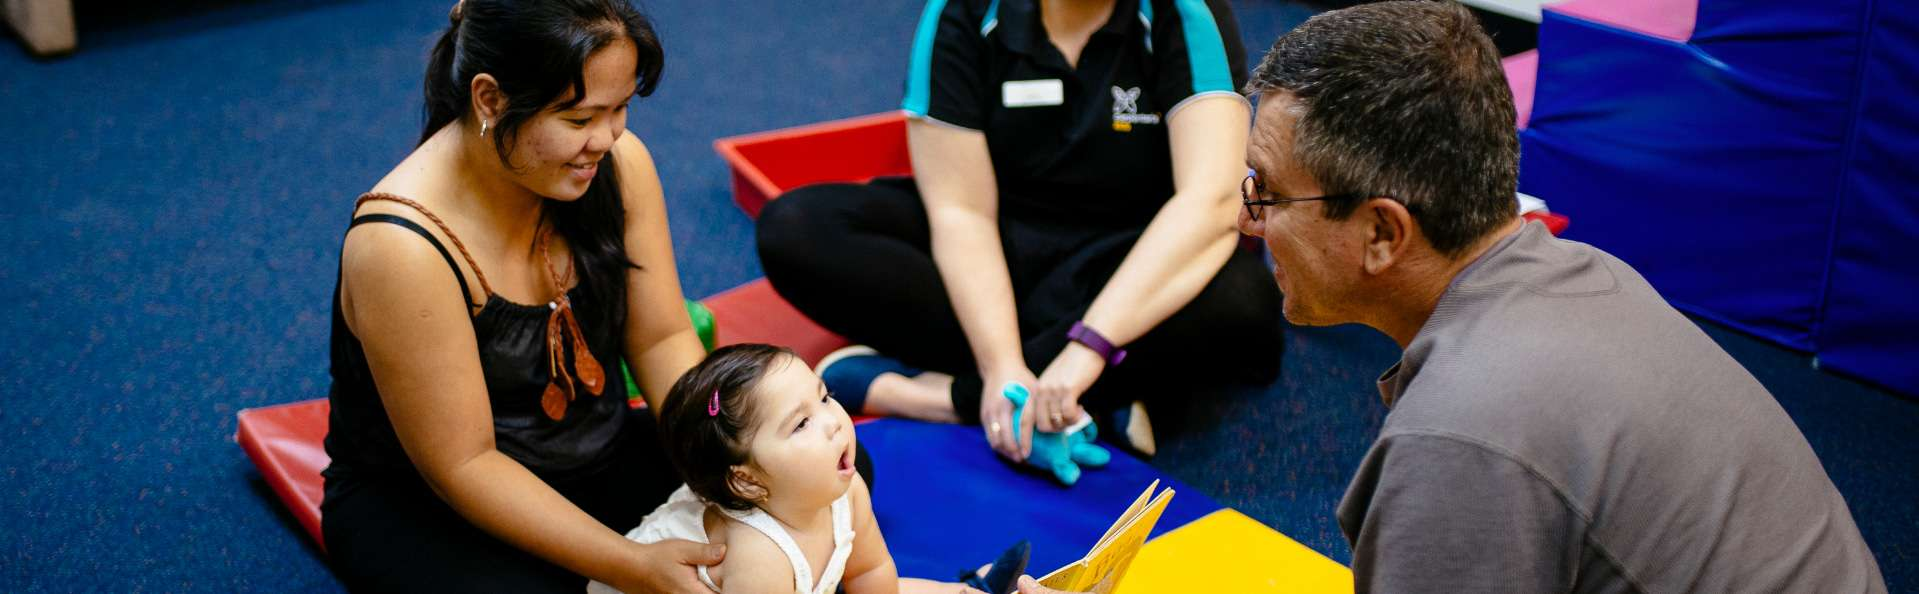 Child enjoys a story with her parents during a therapy session